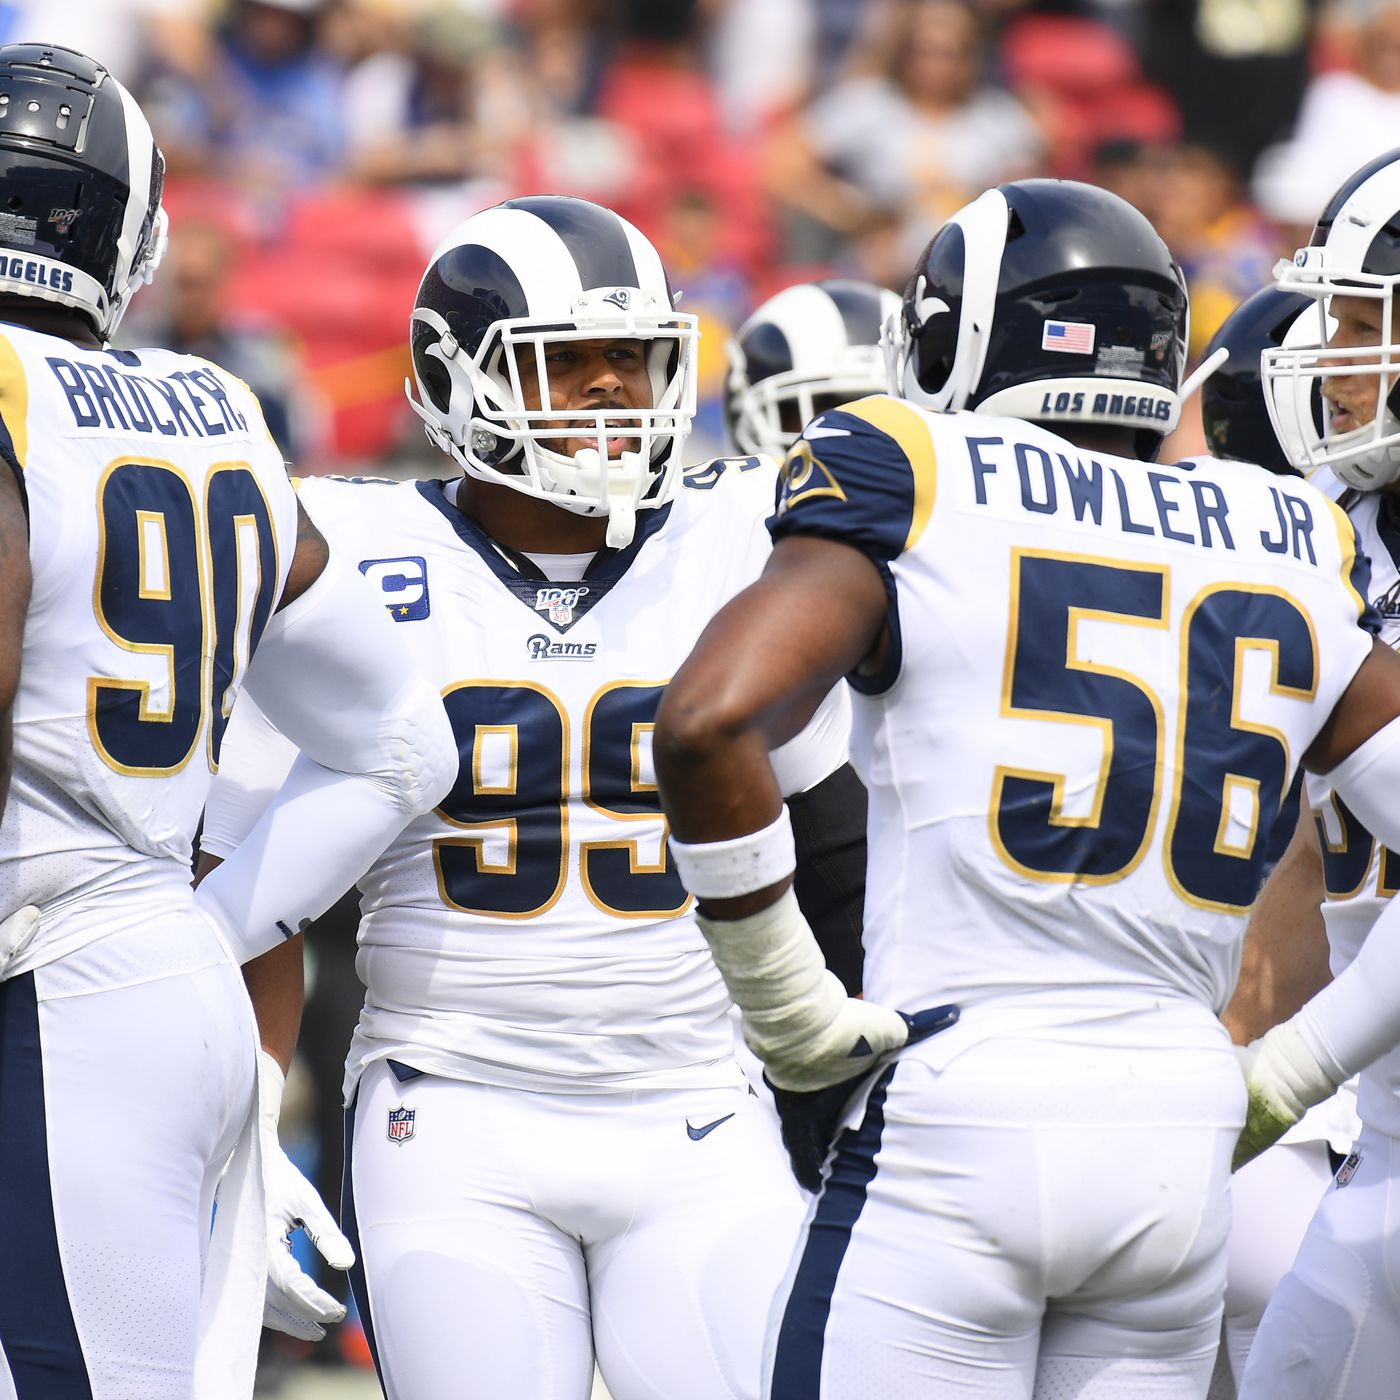 los angeles rams vs tampa bay buccaneers win loss predictions for wk 4 turf show times los angeles rams vs tampa bay